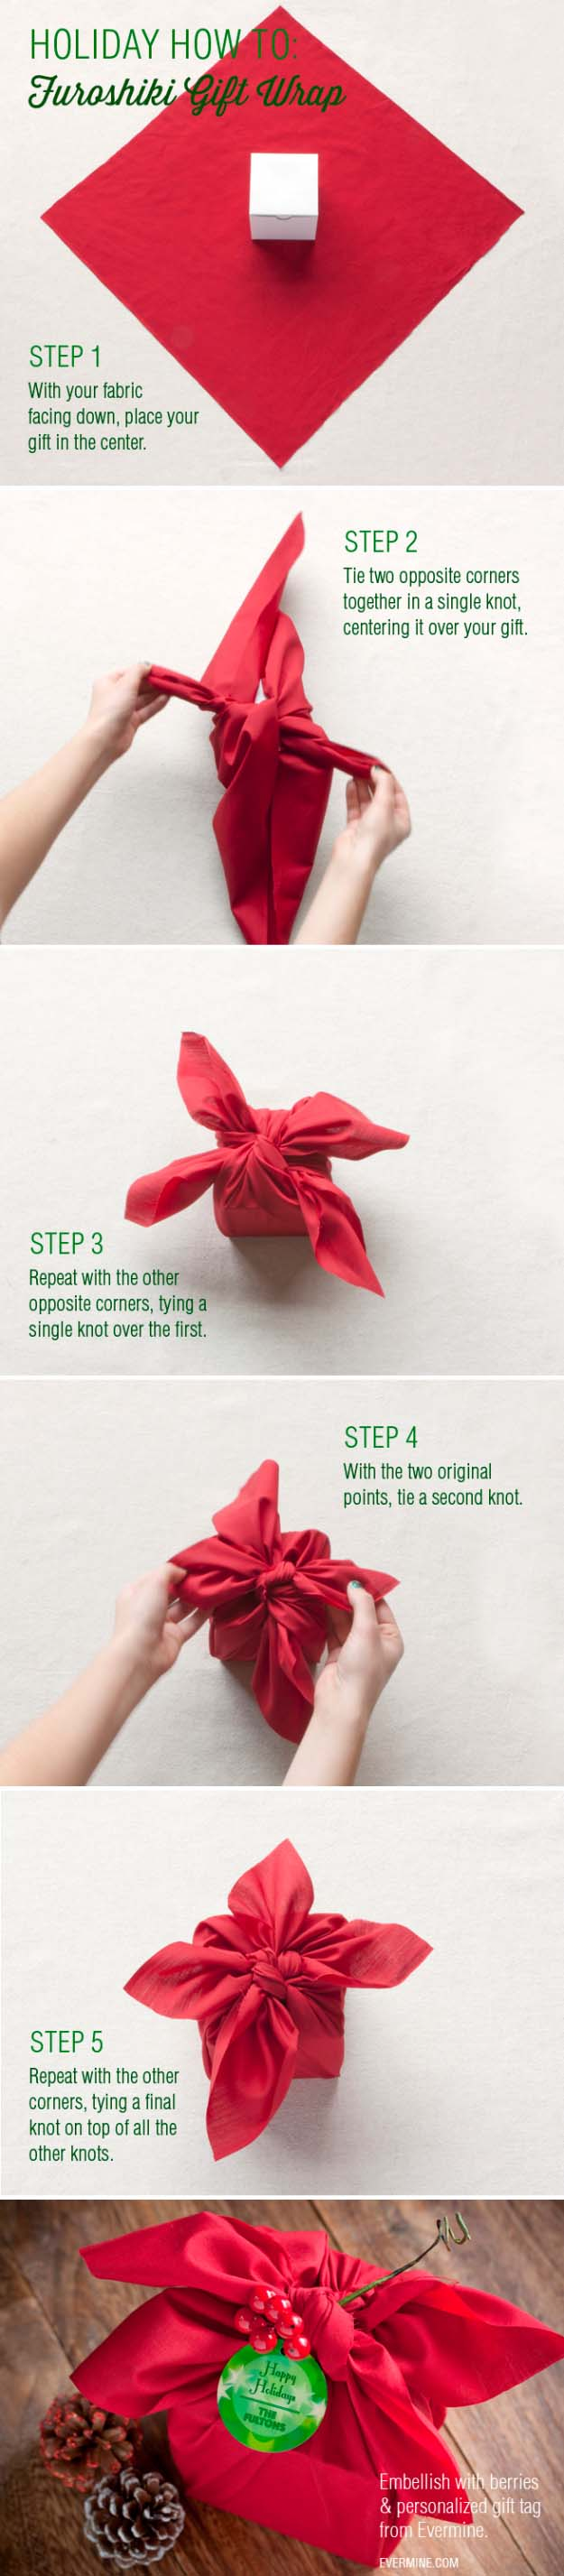 DIY Gift Wrapping Ideas - How To Wrap A Present - Tutorials, Cool Ideas and Instructions | Cute Gift Wrap Ideas for Christmas, Birthdays and Holidays | Tips for Bows and Creative Wrapping Papers | Furoshiki Gift Wrap #gifts #diys